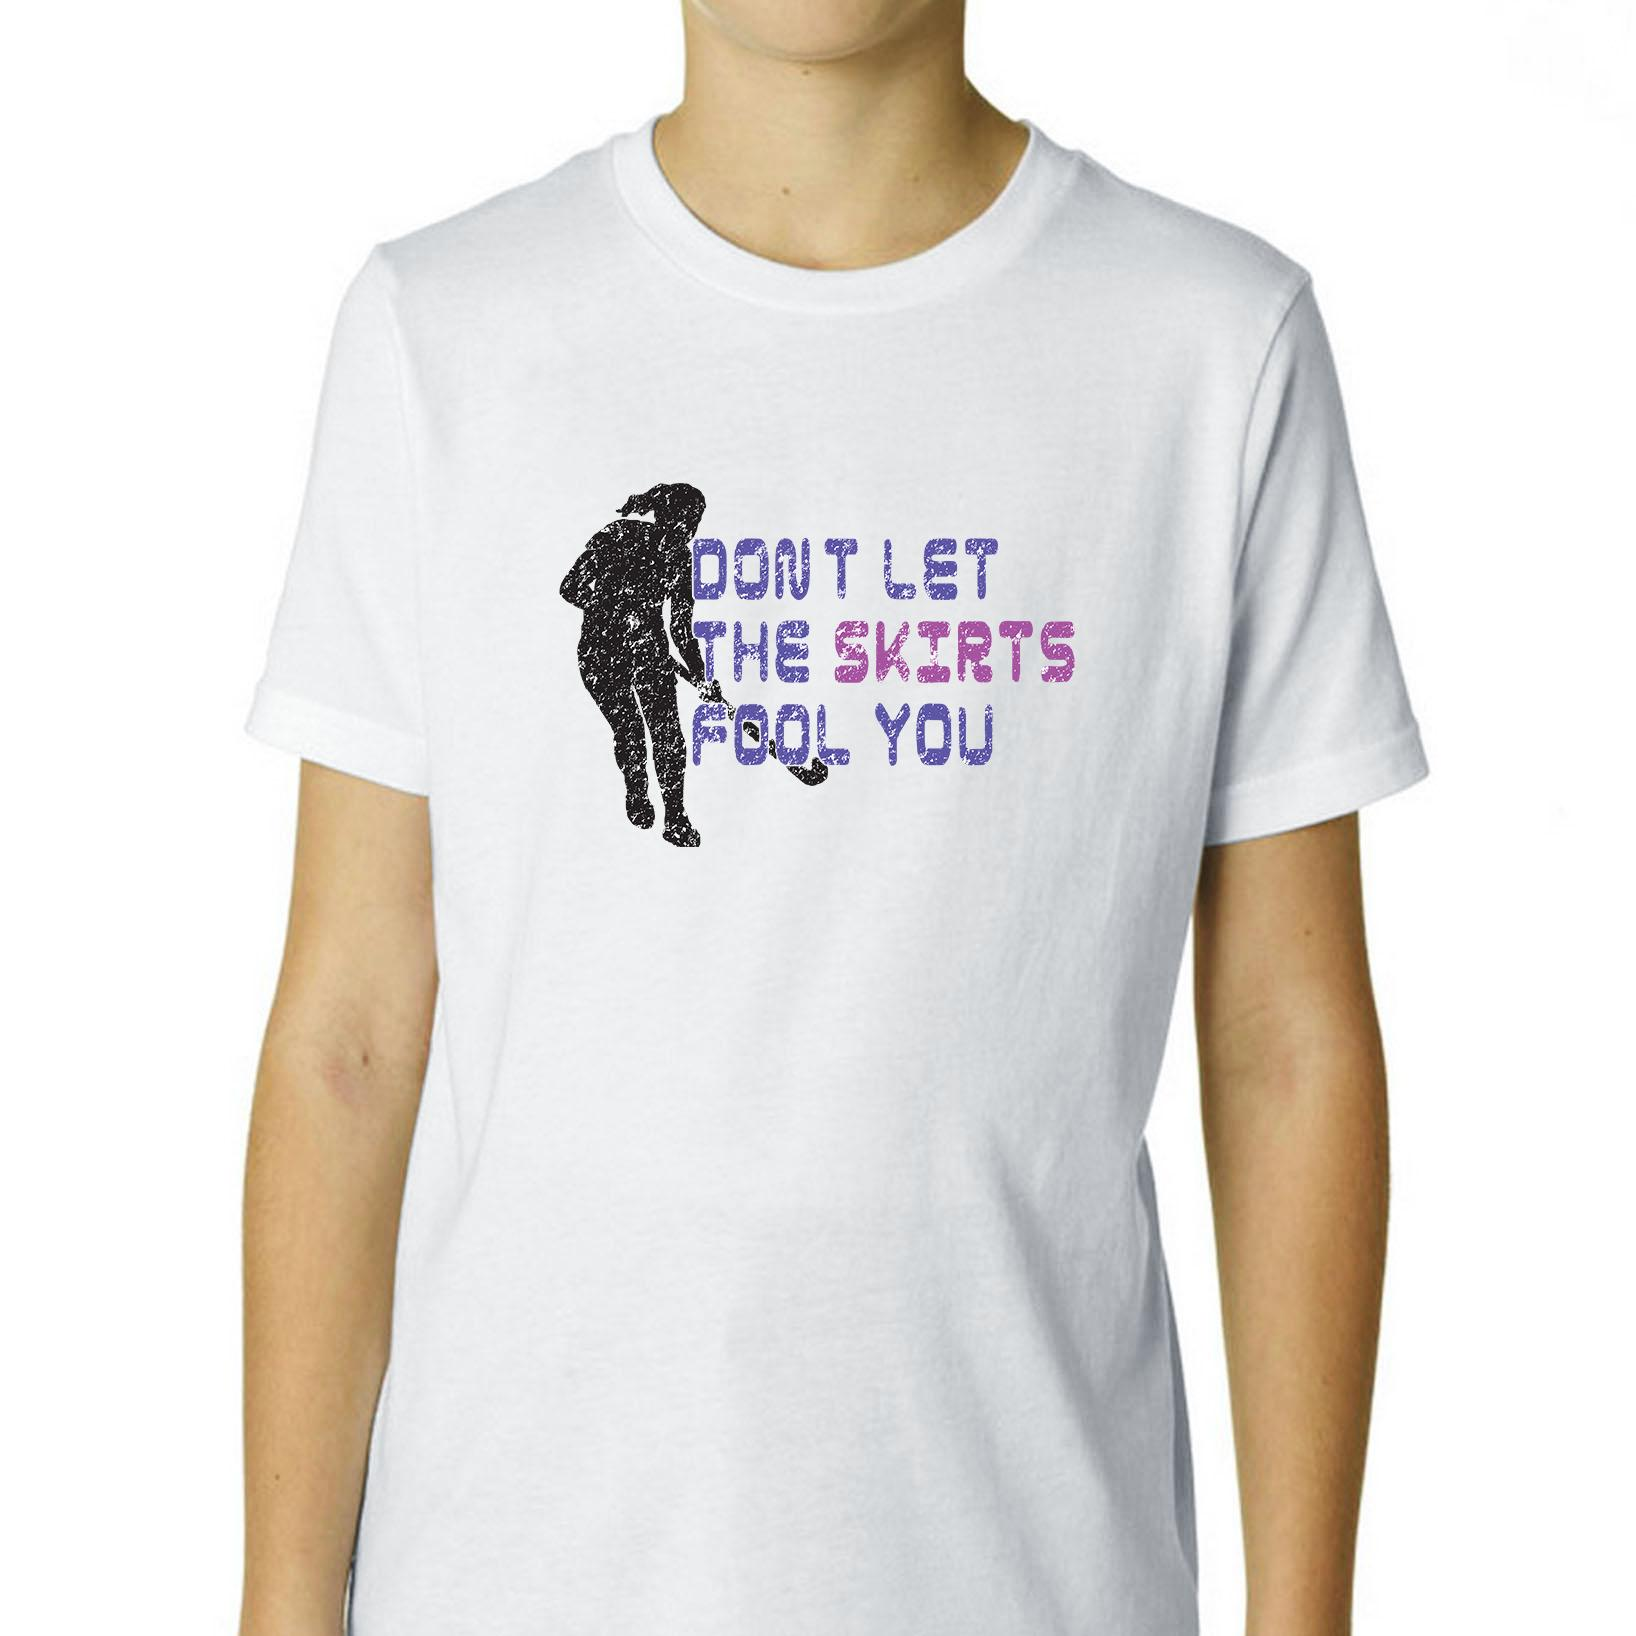 Field Hockey Player Don't Let The Skirts Fool You Boy's Cotton Youth T-Shirt by Hollywood Thread